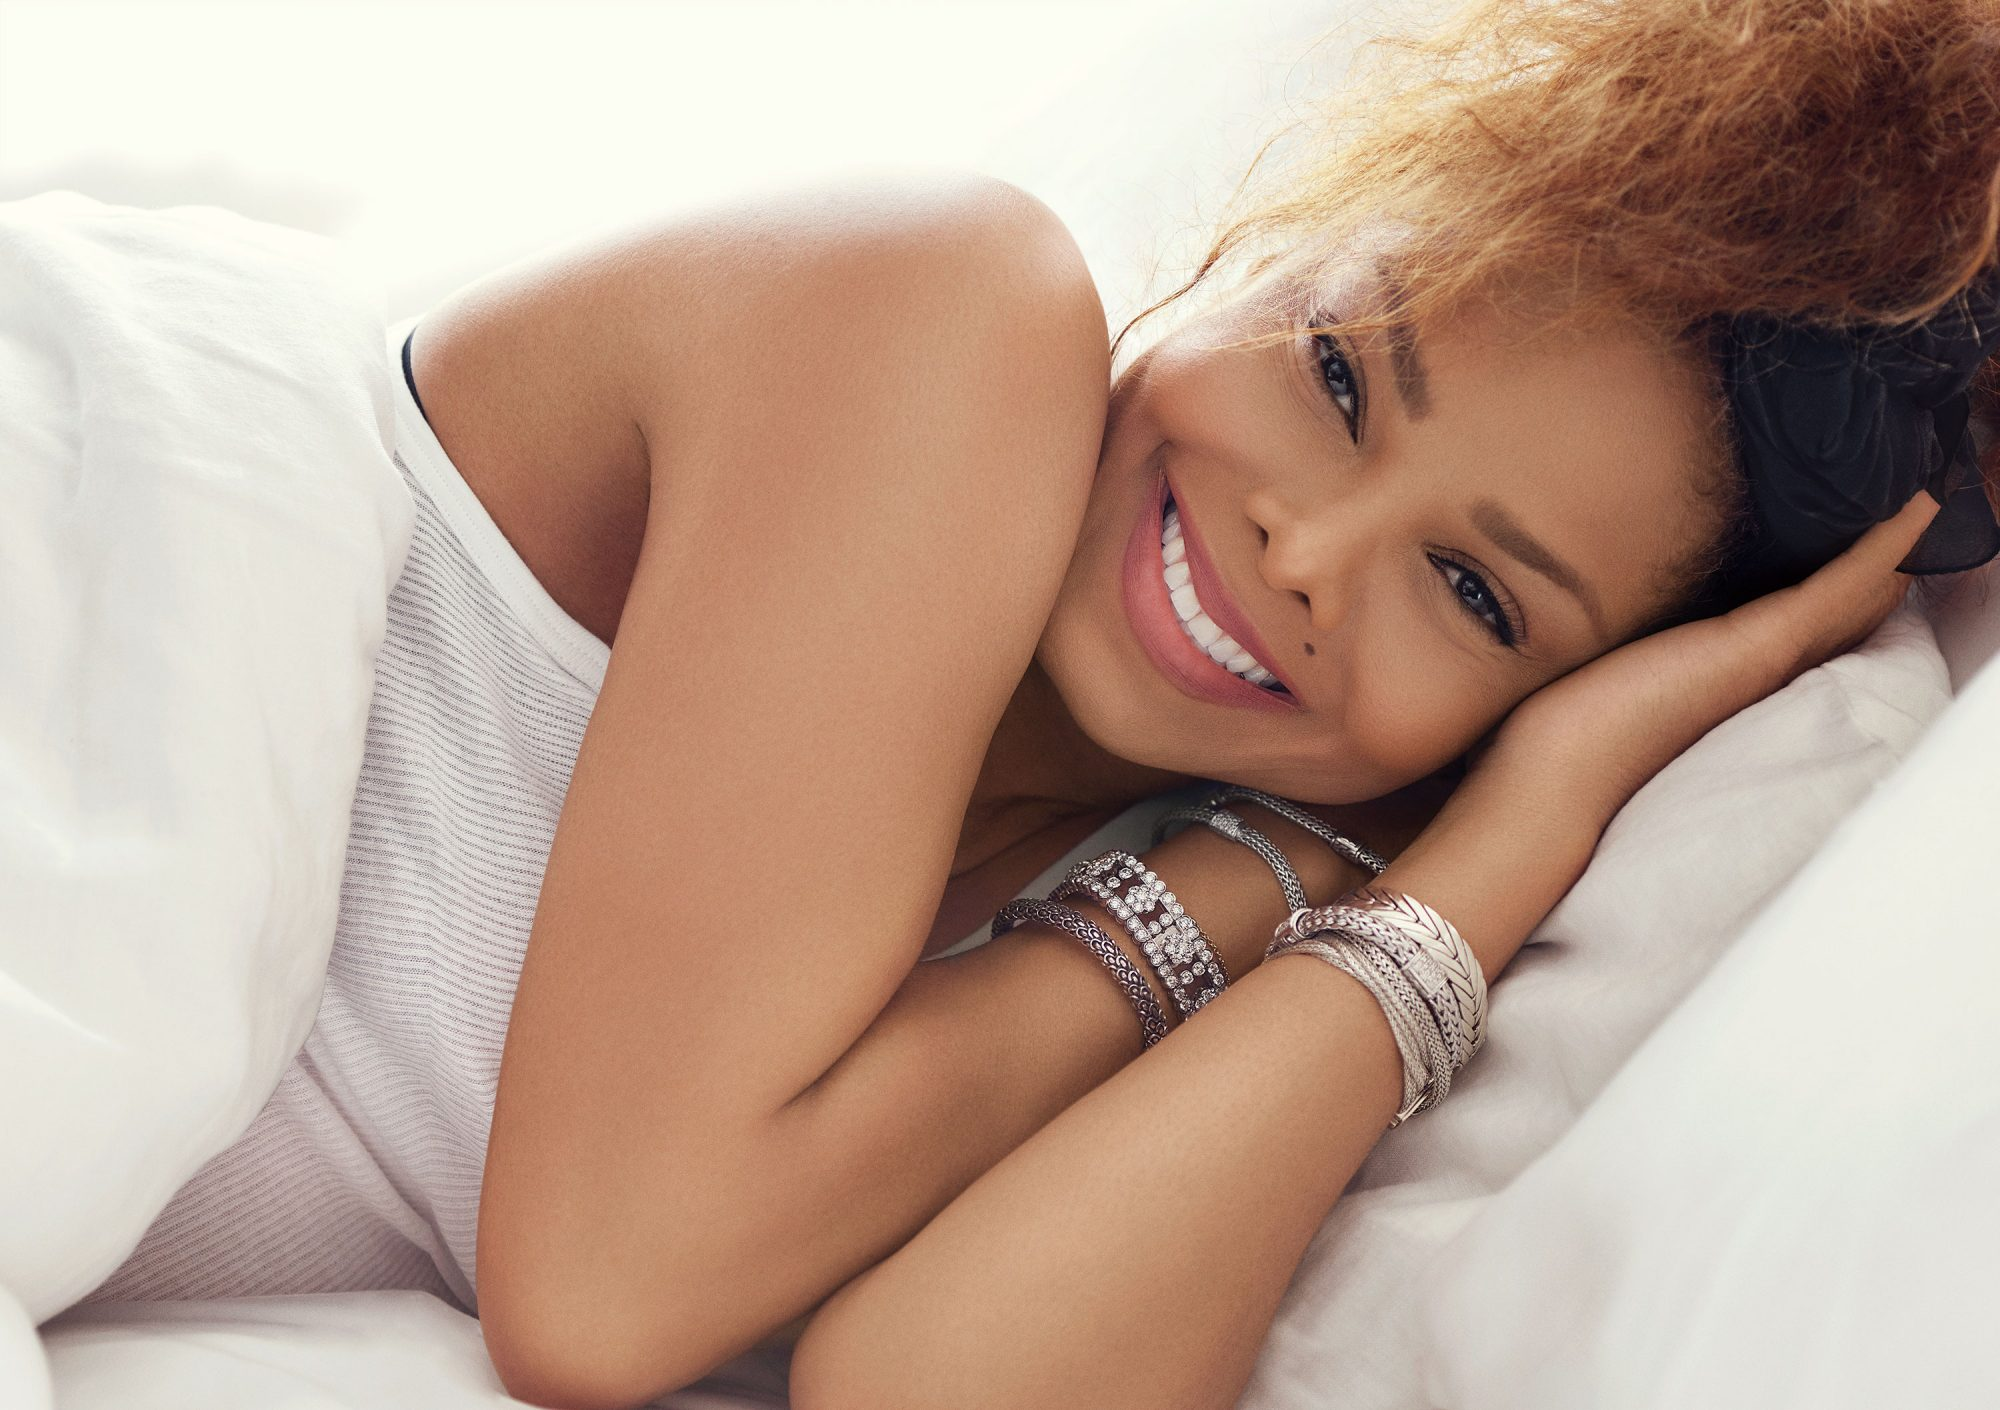 Beauty According to Janet Jackson